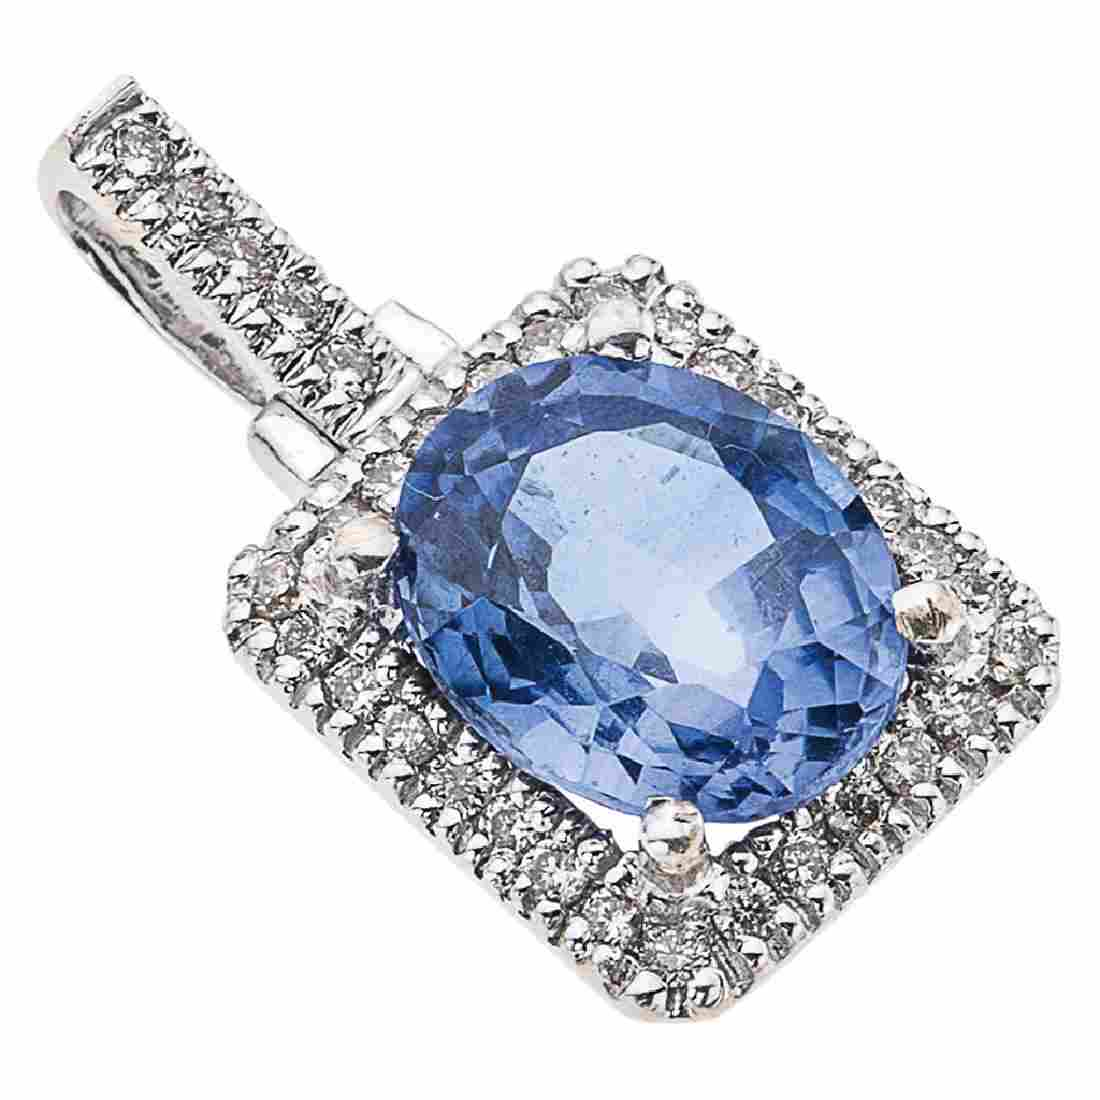 A 14K white gold pendant with 1 oval cut sapphire ~4.20